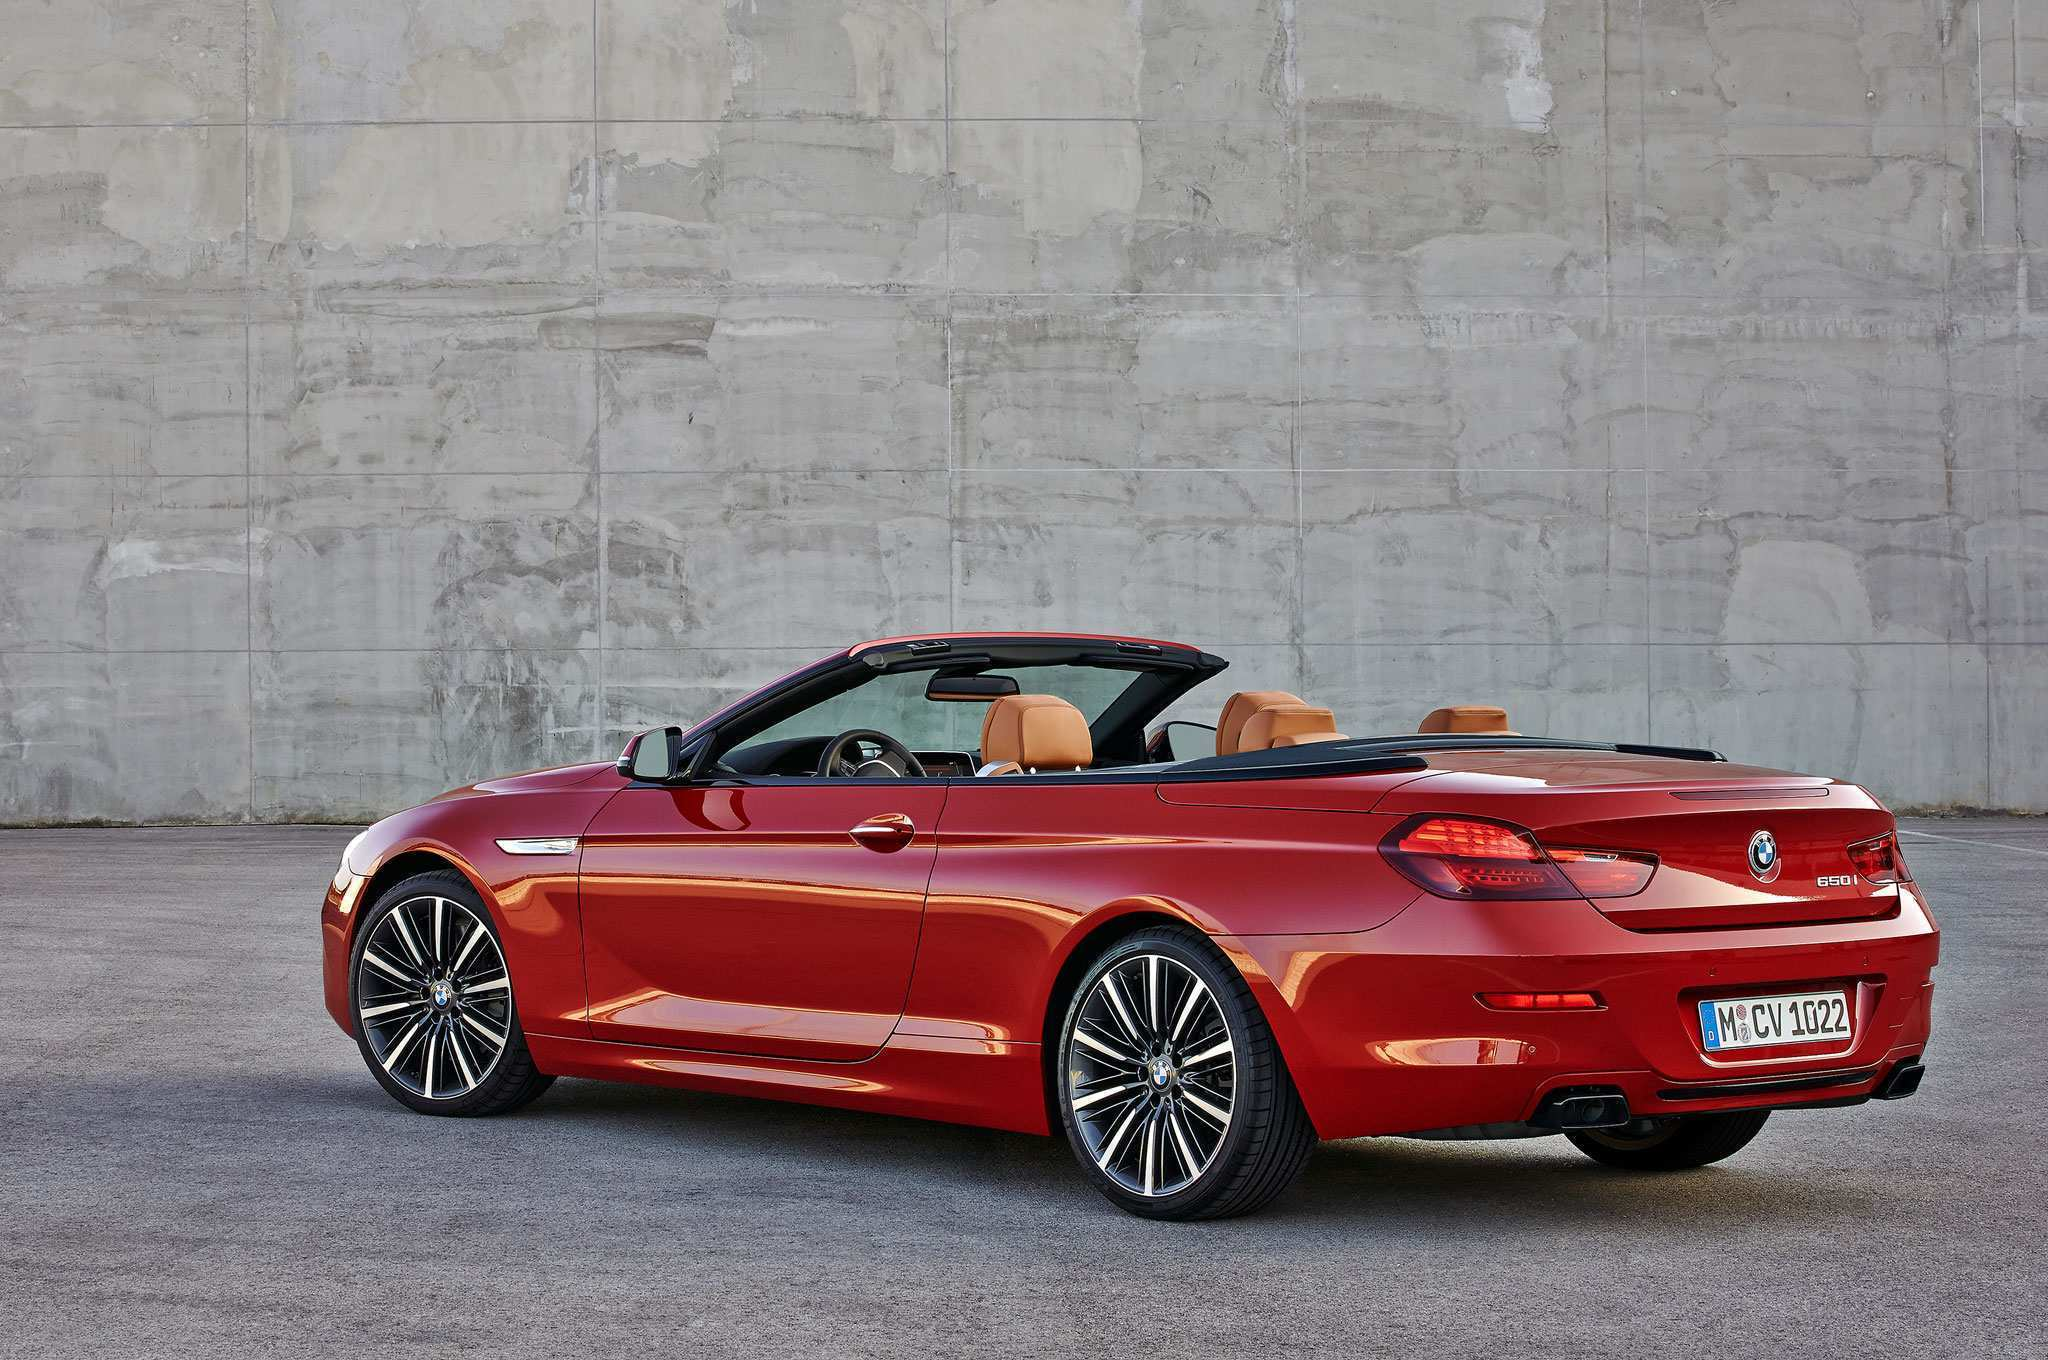 97 Gallery of 2020 Bmw 6 Series Convertible Pictures for 2020 Bmw 6 Series Convertible